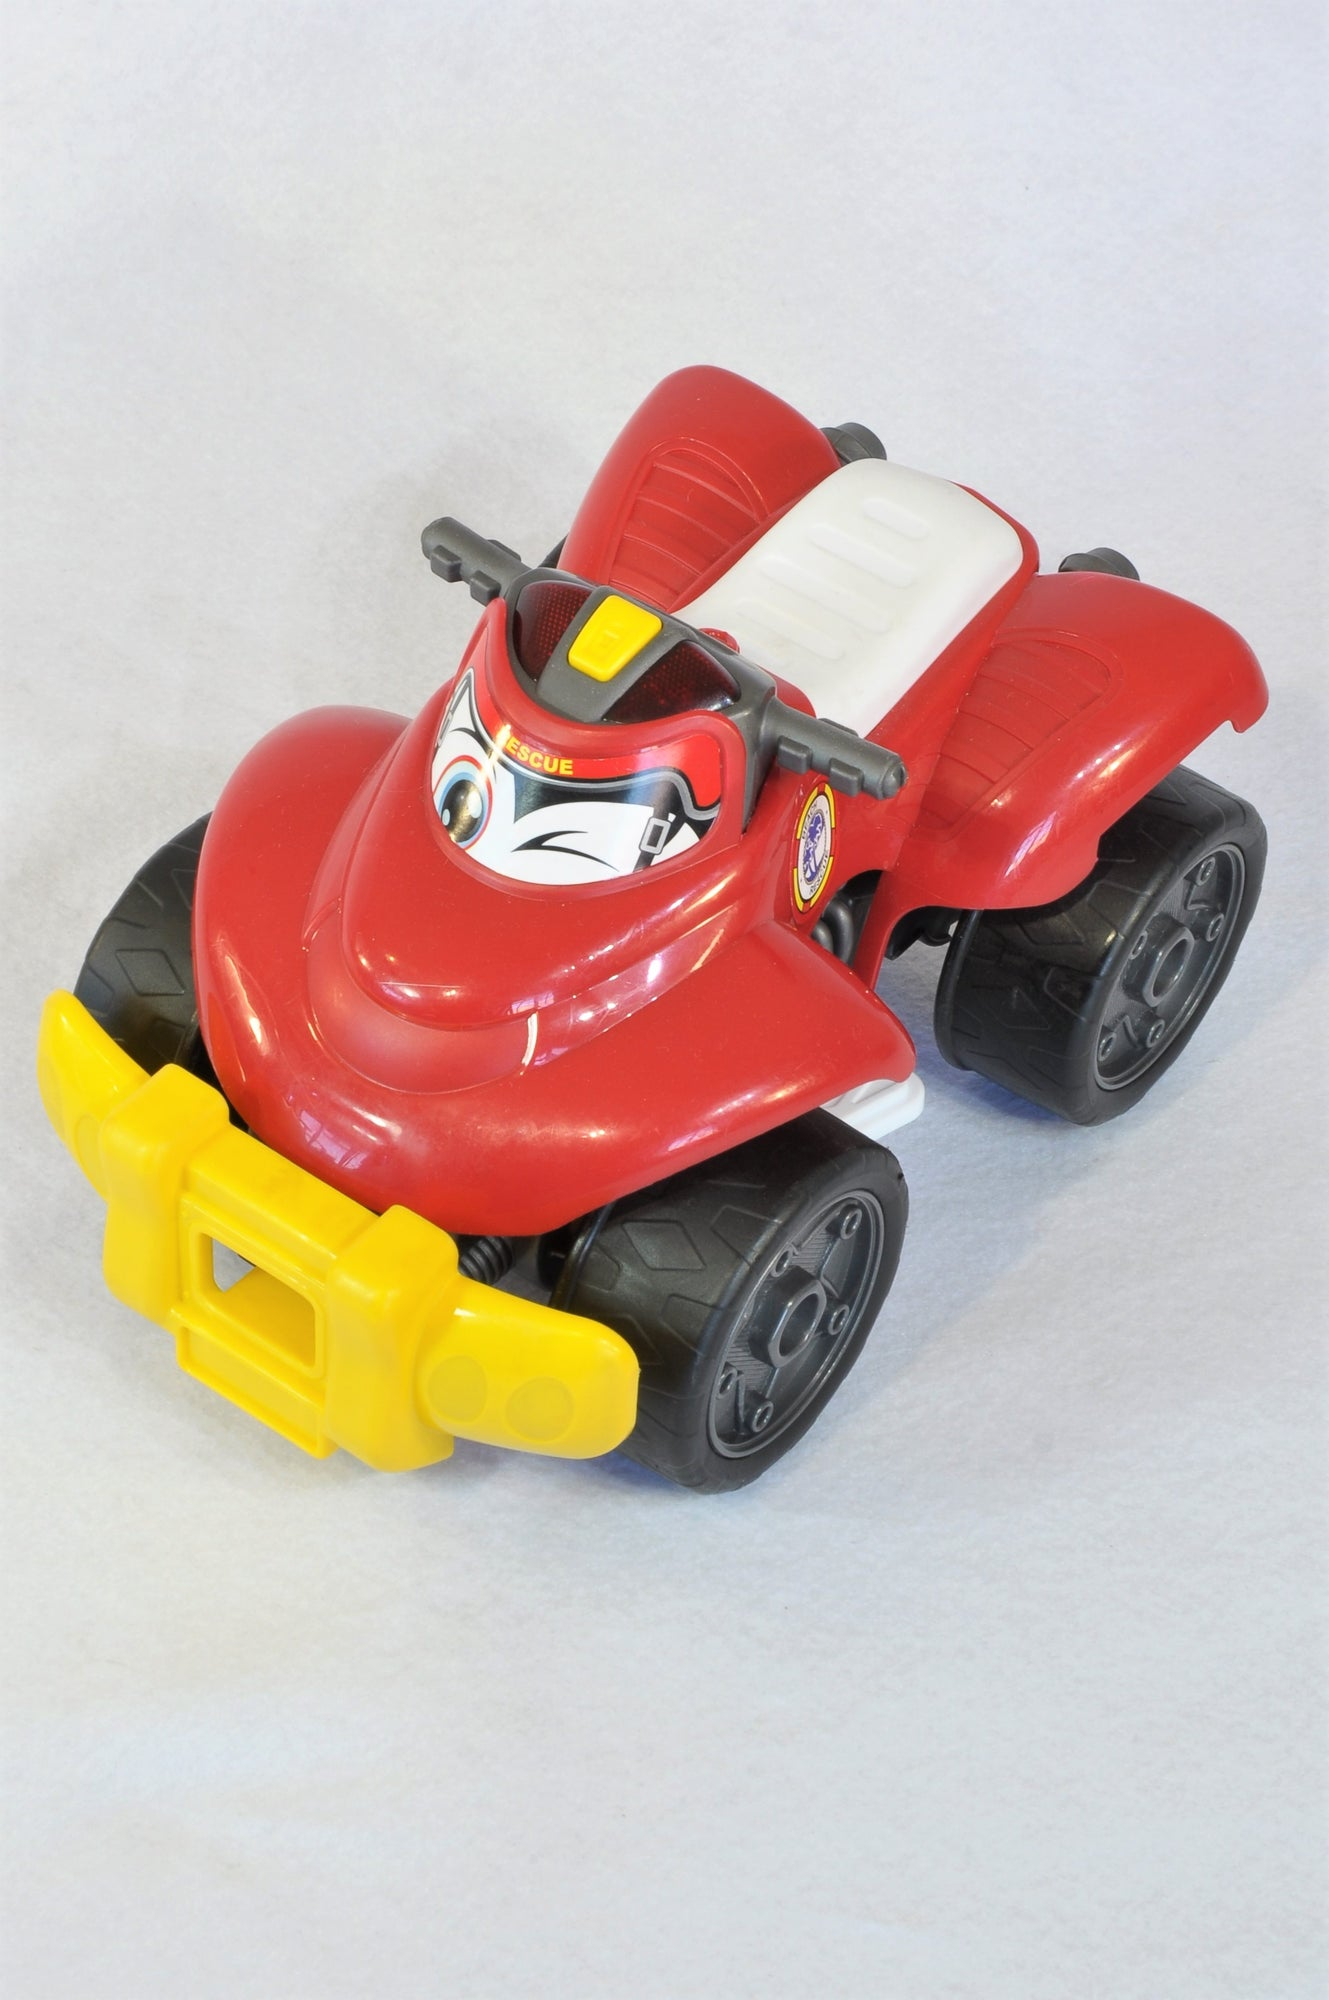 Dickie Red Beach Rescue Siren Buggy Toy Unisex 2-7 years